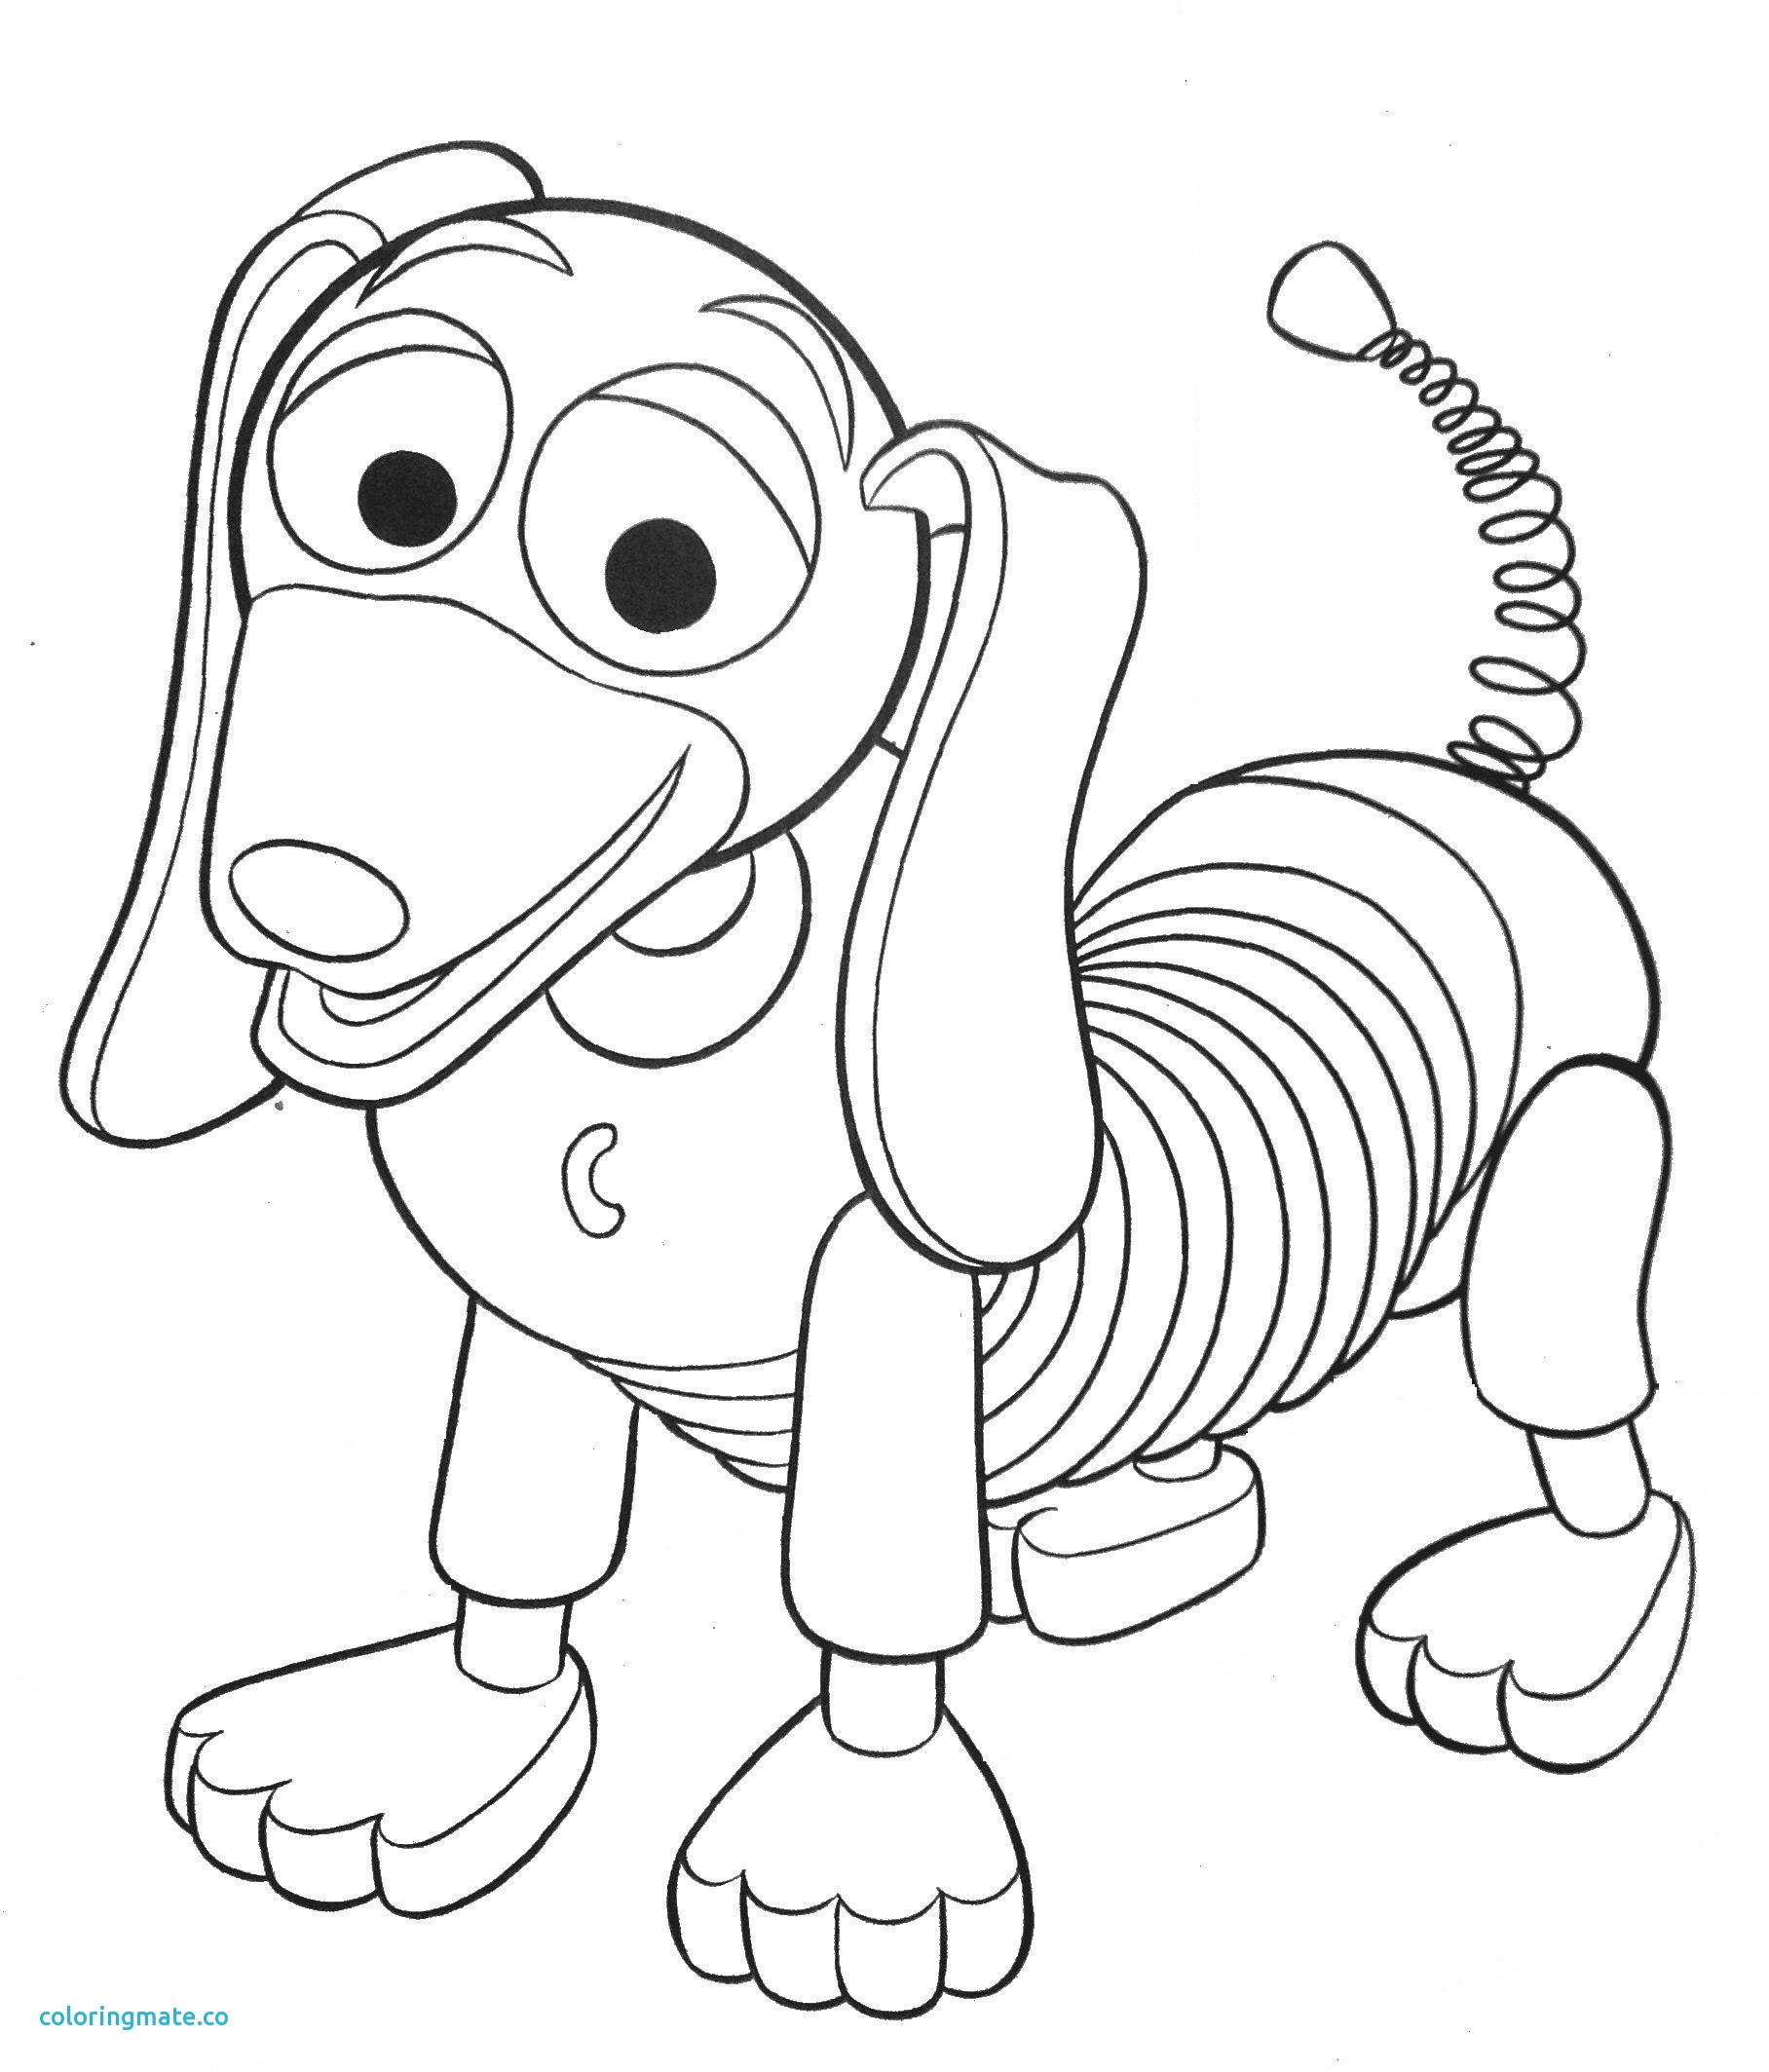 Toy Story Alien Drawing At Getdrawingscom Free For Personal Use